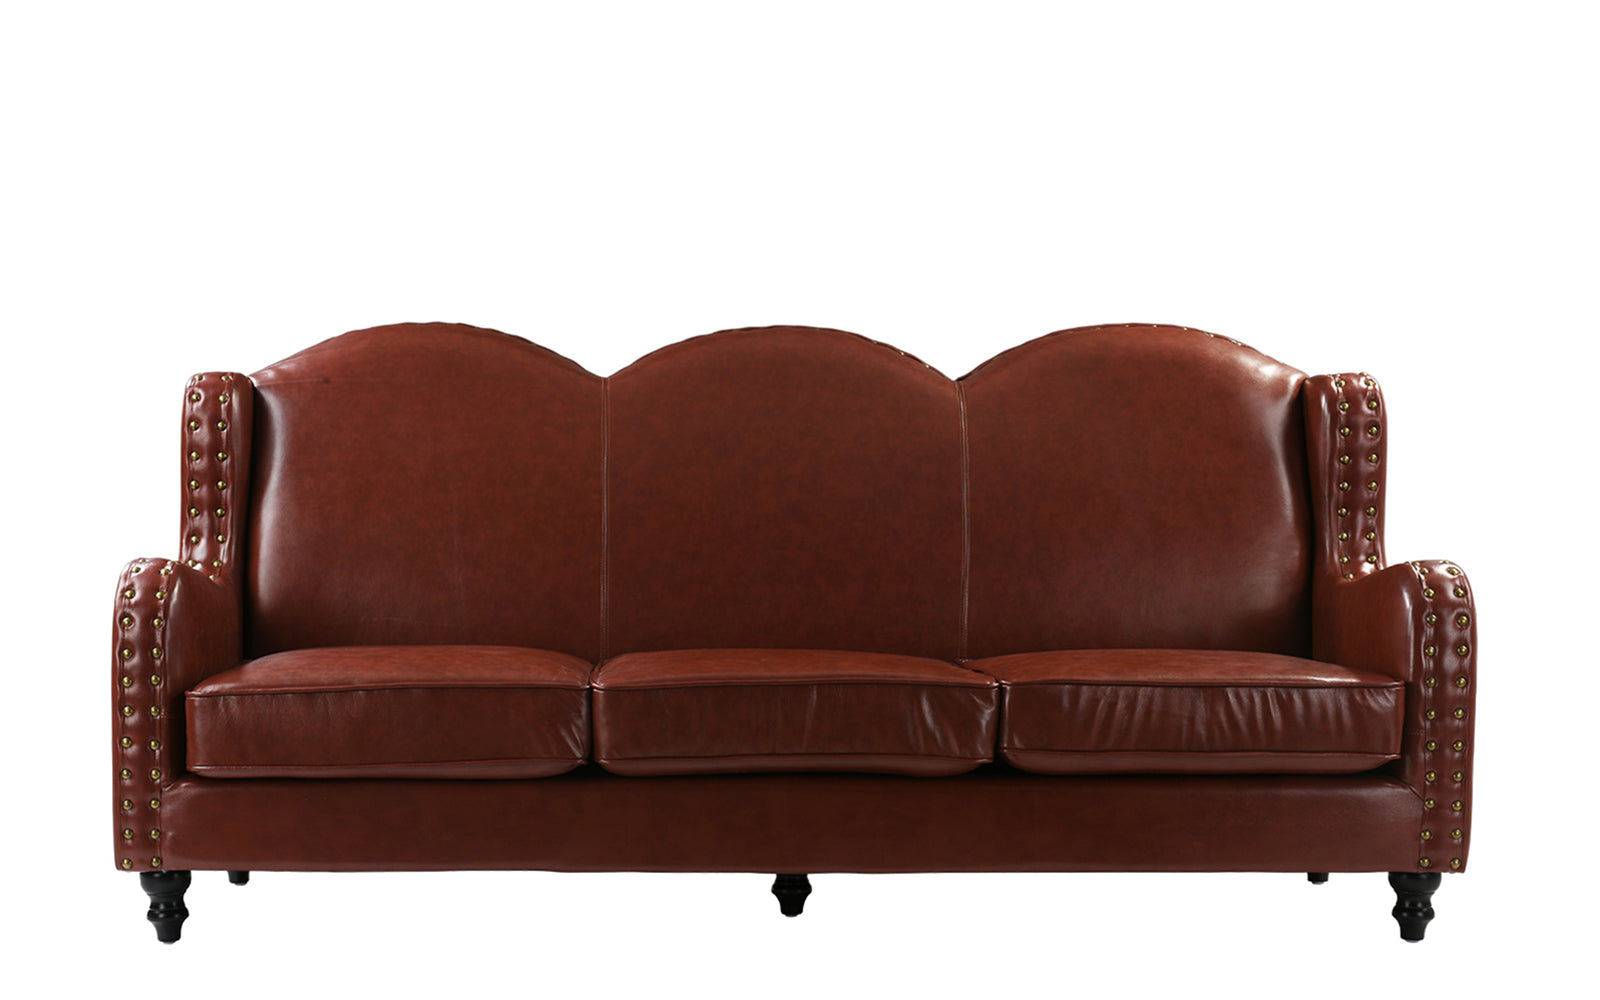 Wingback Leather Sofa Image